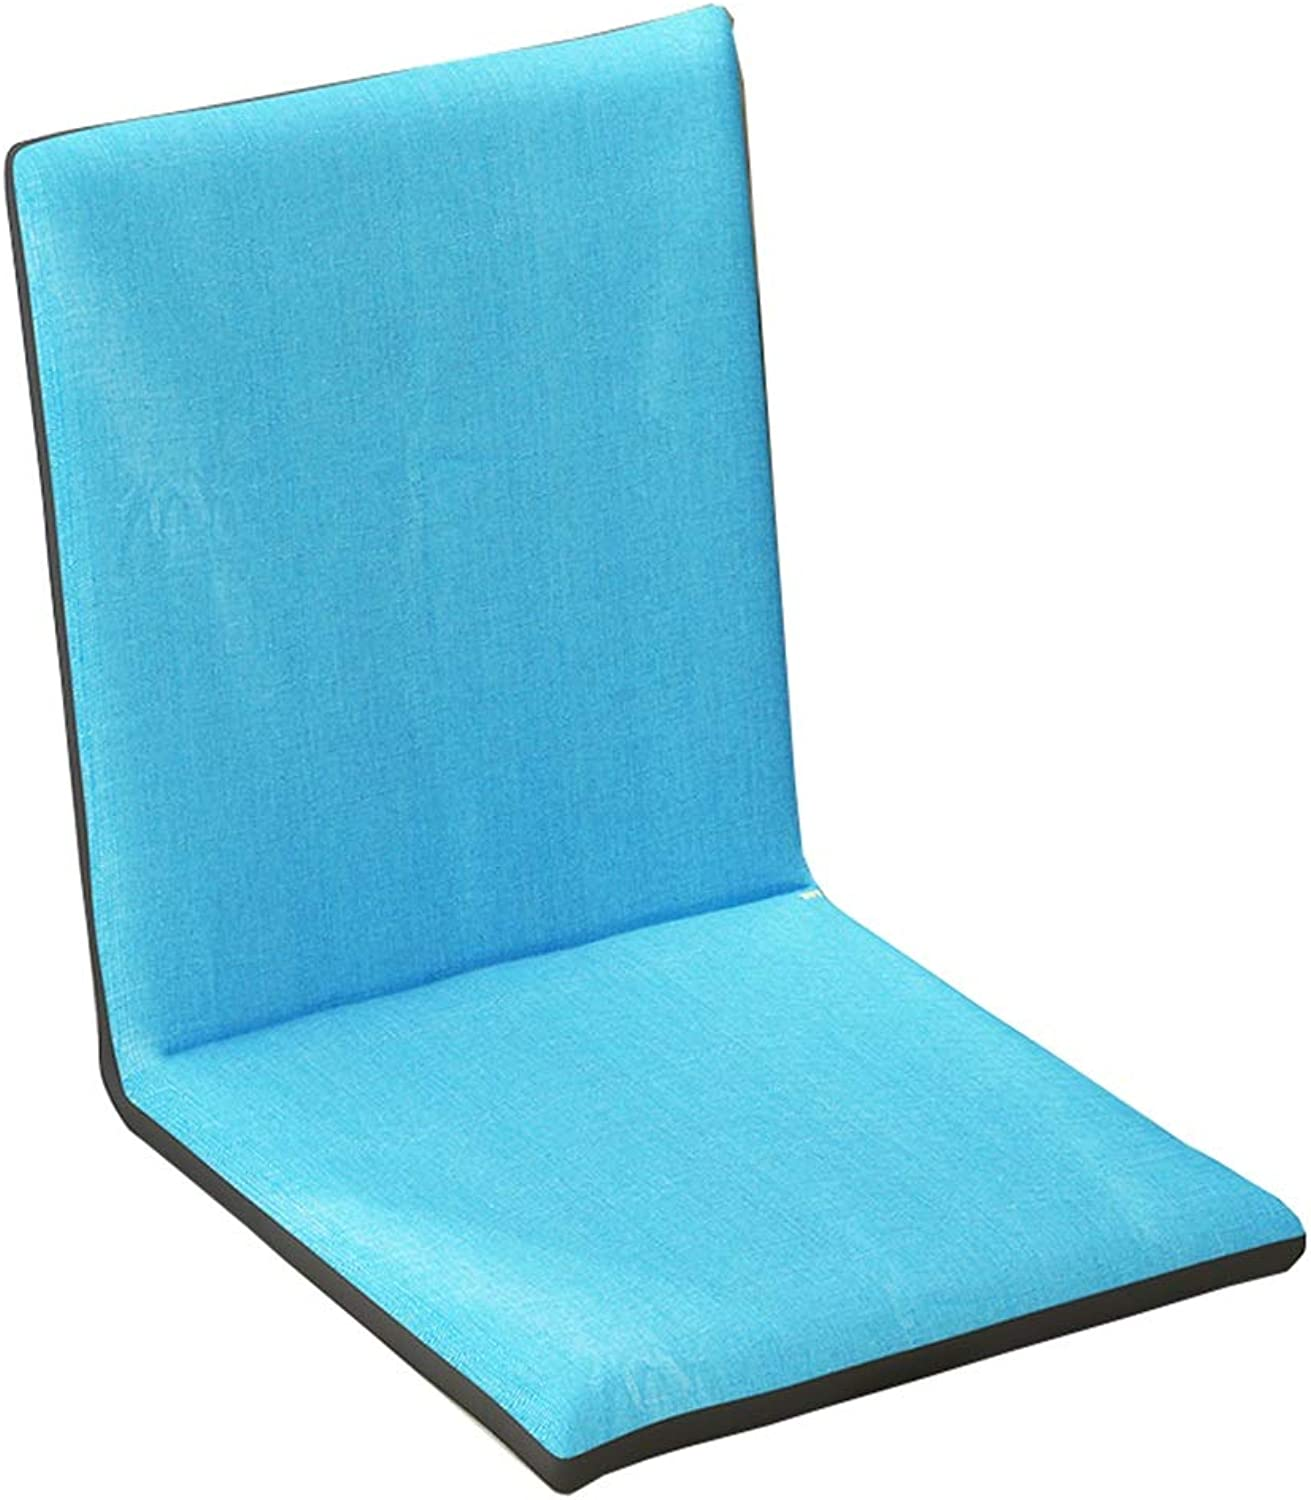 LJFYXZ Floor Folding Gaming Sofa Chair Individual Foldable Cushion 5-Speed Adjustment Easy to Remove and wash Bedroom Living Room Armchair (color   bluee)